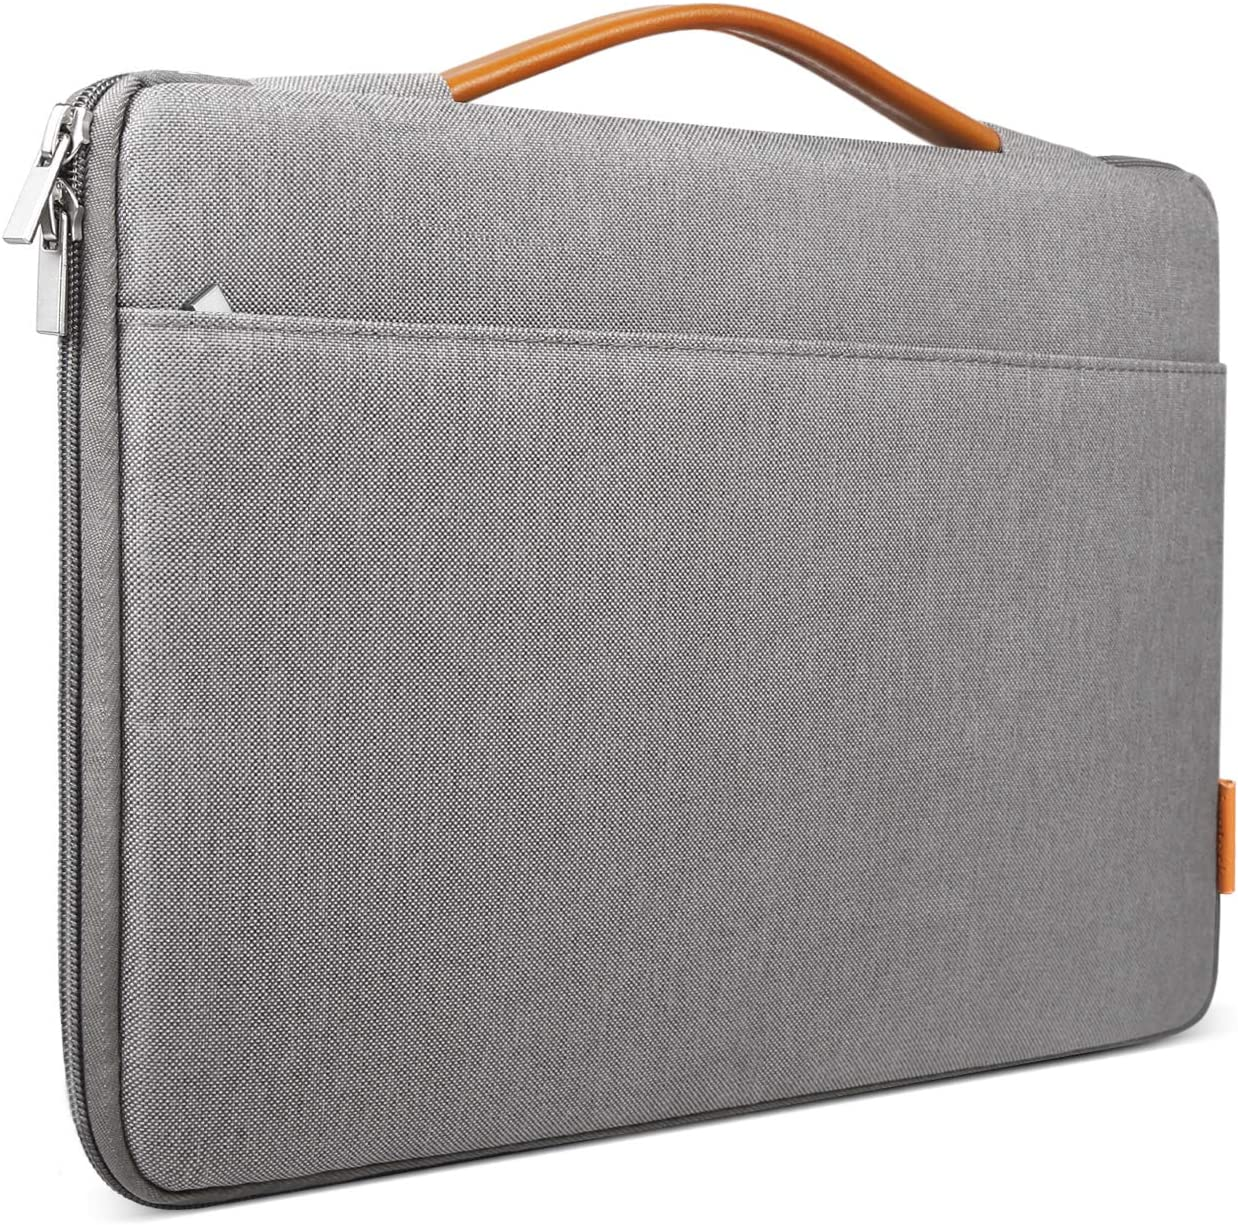 Inateck Laptop Sleeve Briefcase Bag Compatible 16 Inch MacBook Pro/15.4 Inch MacBook Pro 2013-2015/15 Inch MacBook 2019 2018 2017 2016/15 Inch Surface Book 2 - Dark Gray